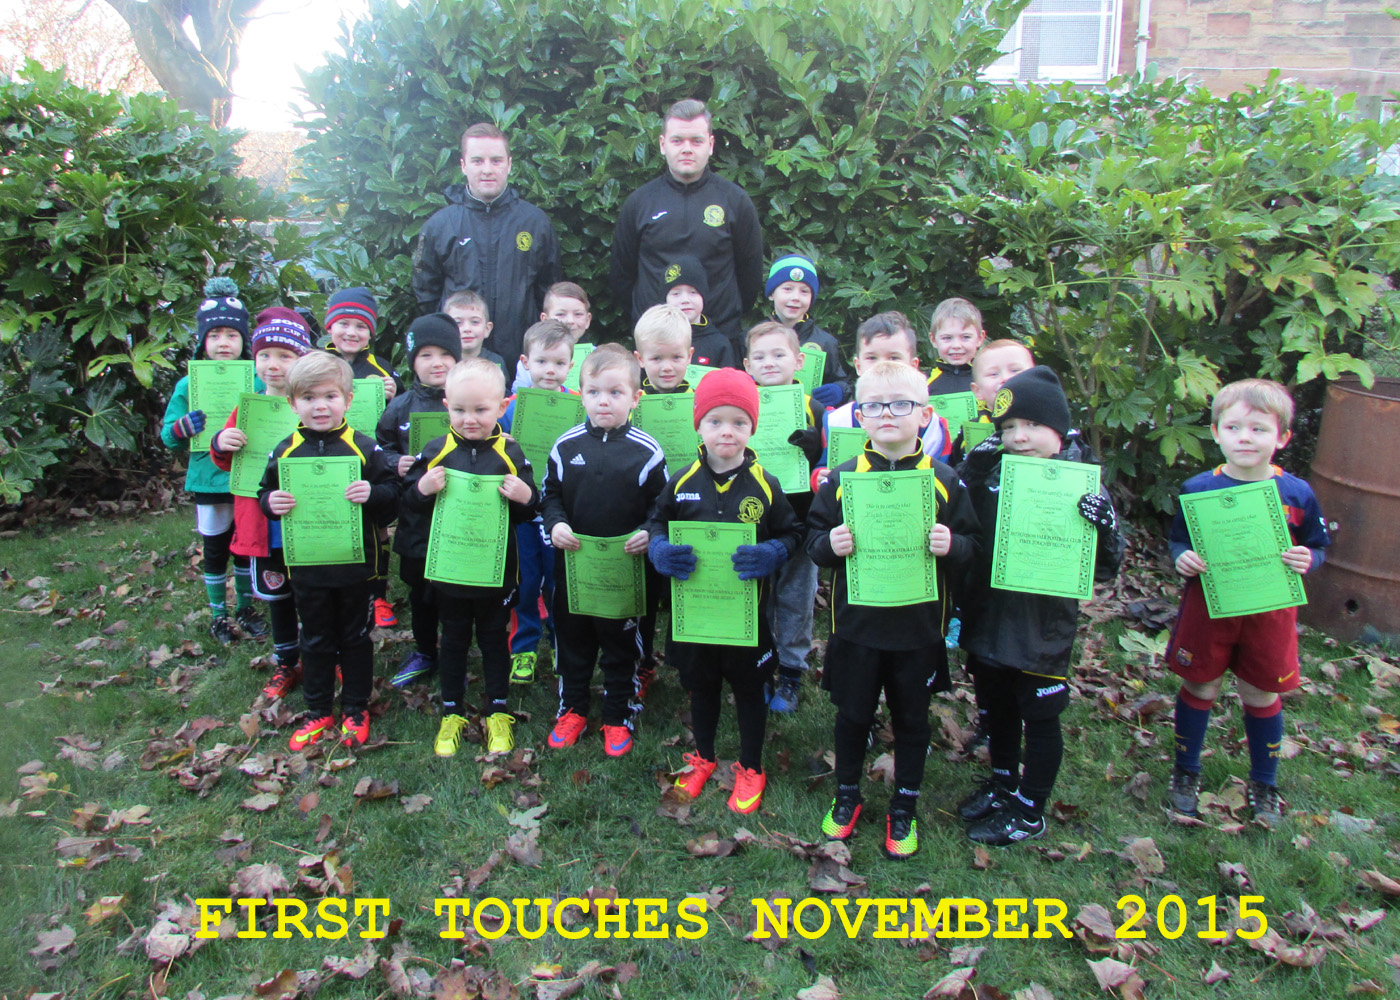 FIRST TOUCHES GROUP NOVEMBER 2015